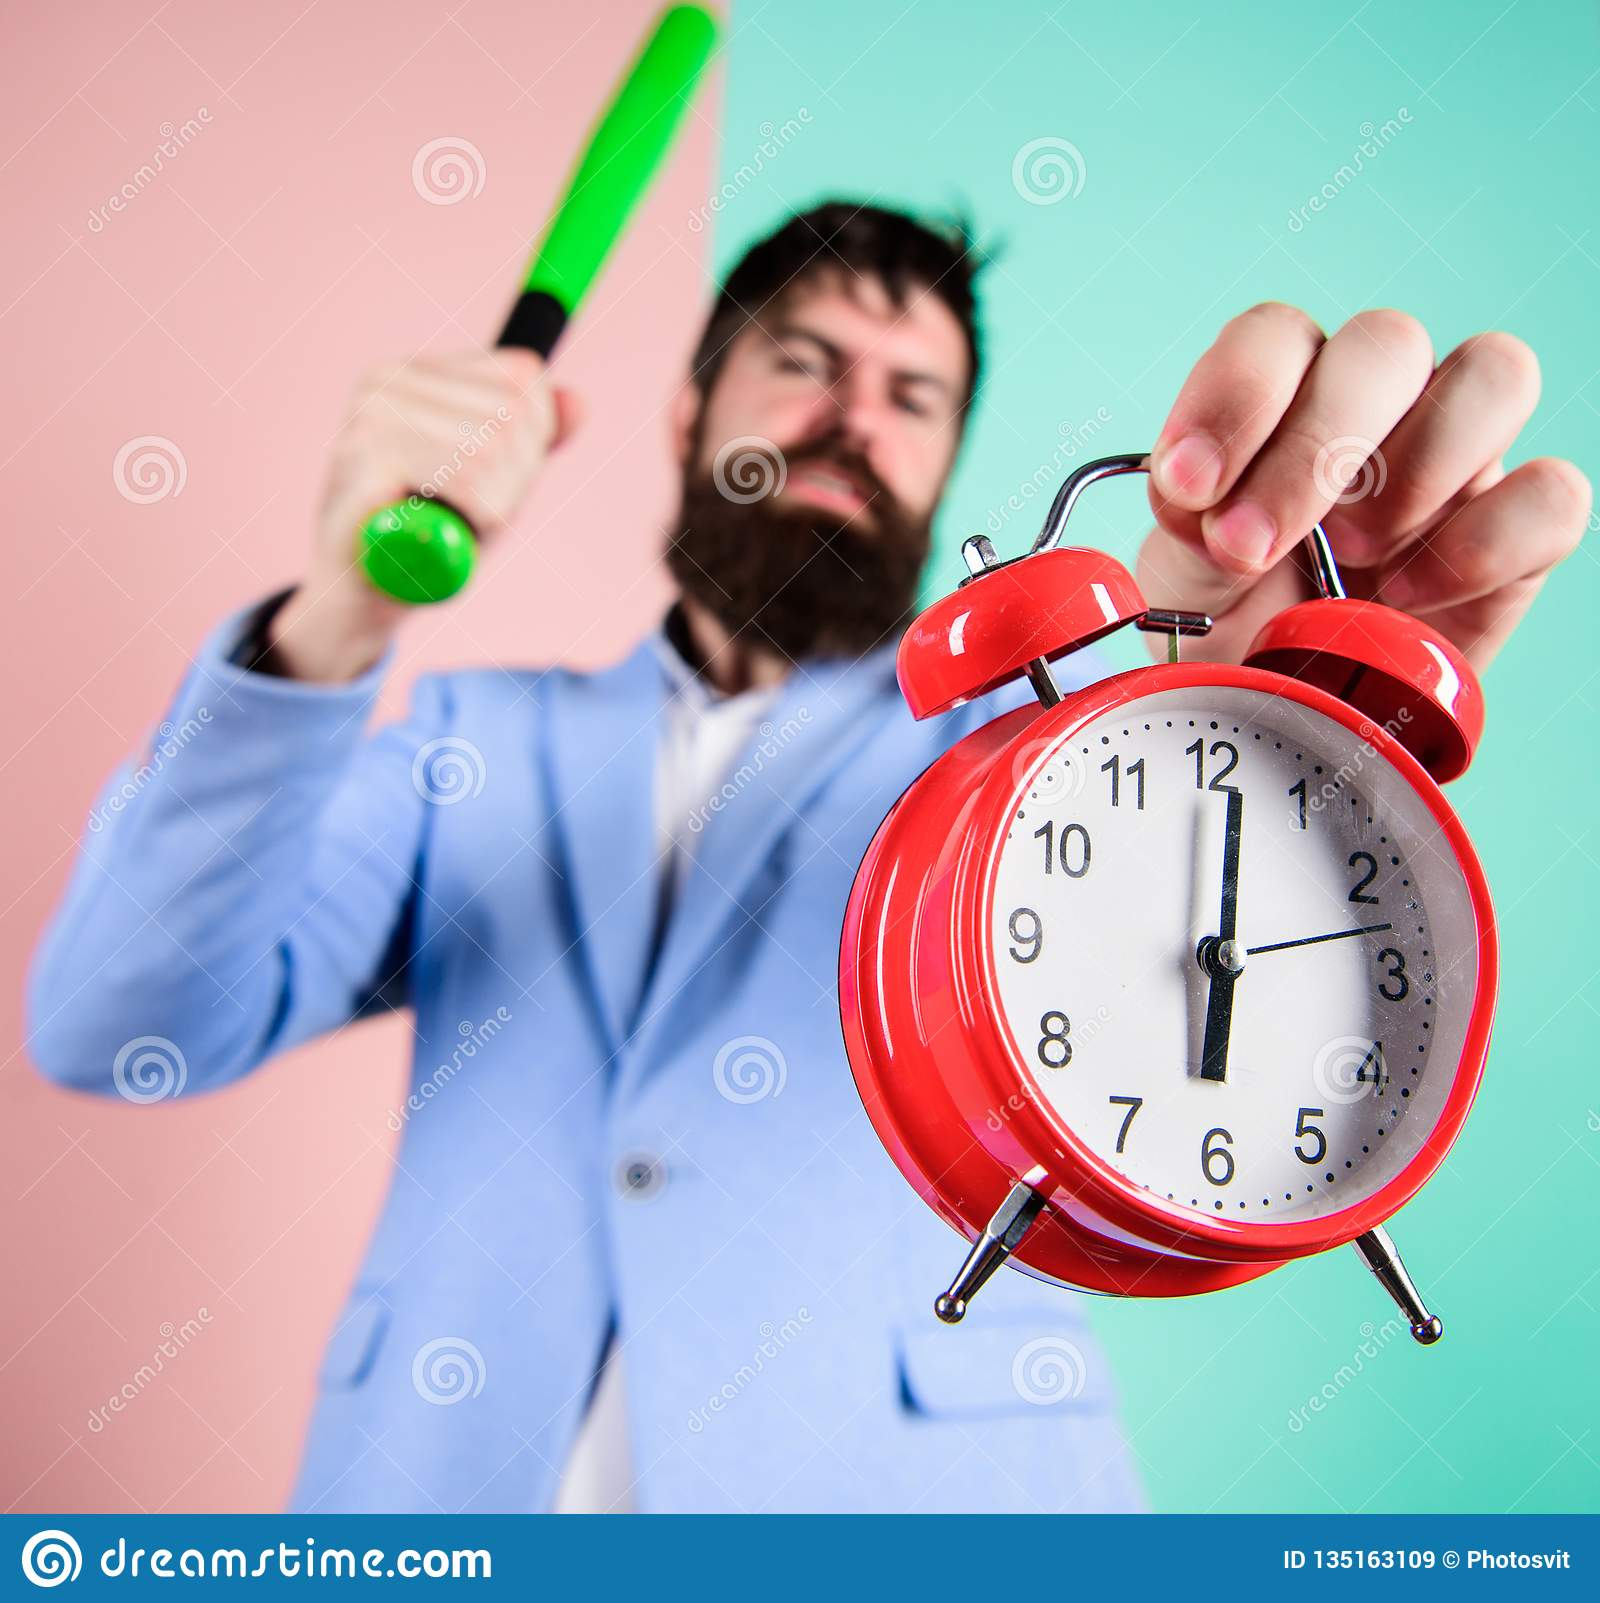 Discipline And Sanctions  Boss Aggressive Face Hold Alarm Clock